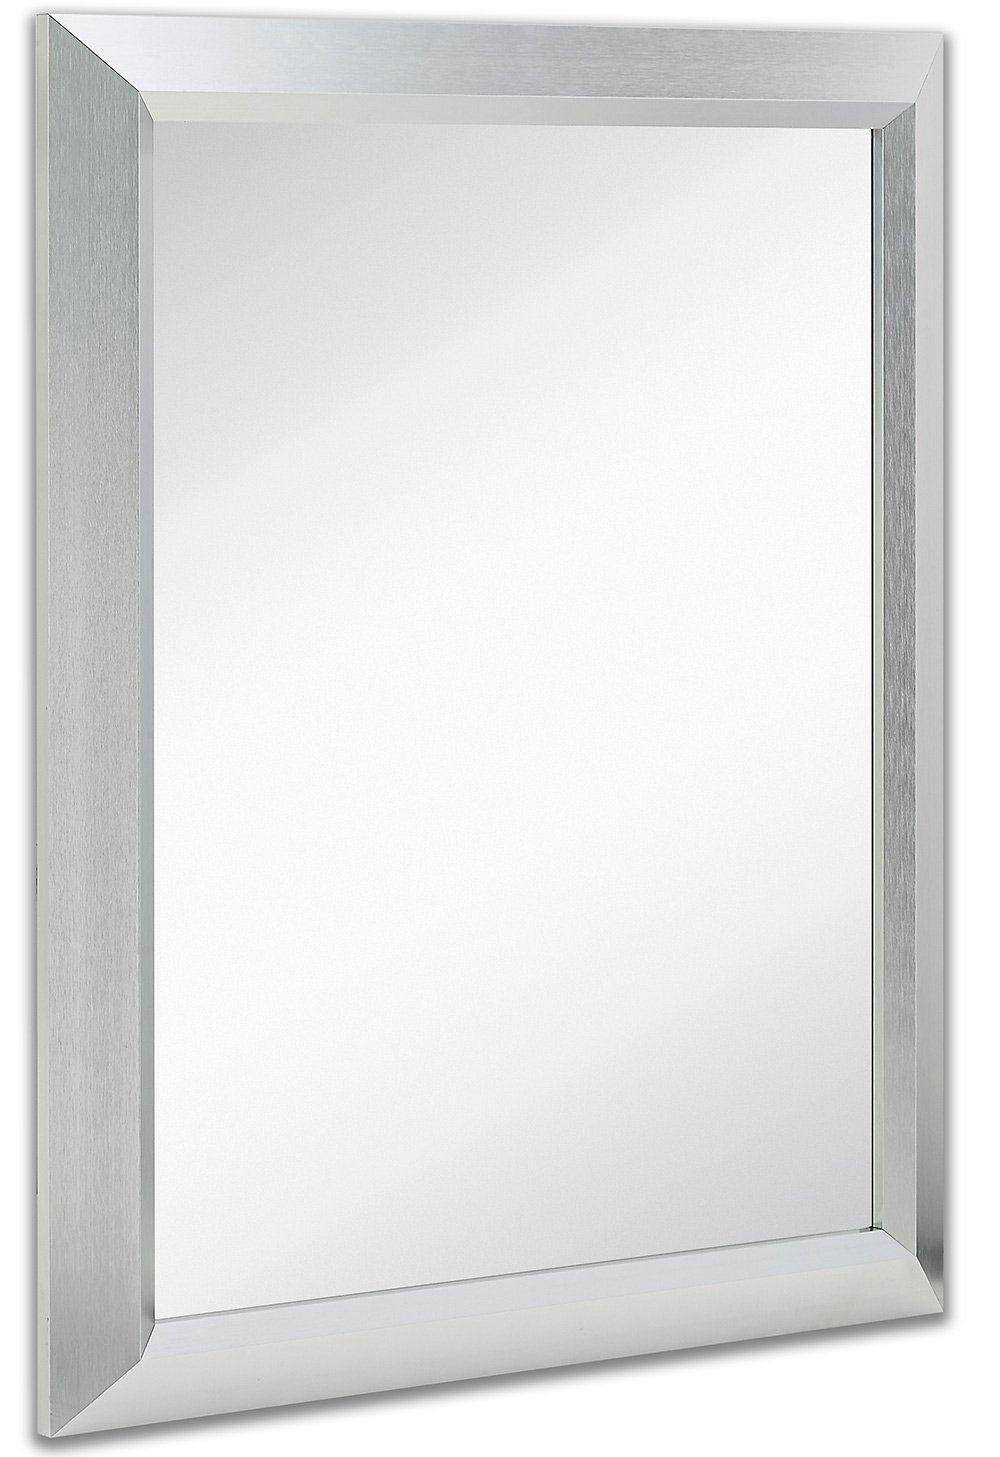 Premium Rectangular Brushed Nickel Wall Mirror Contemporary Metal